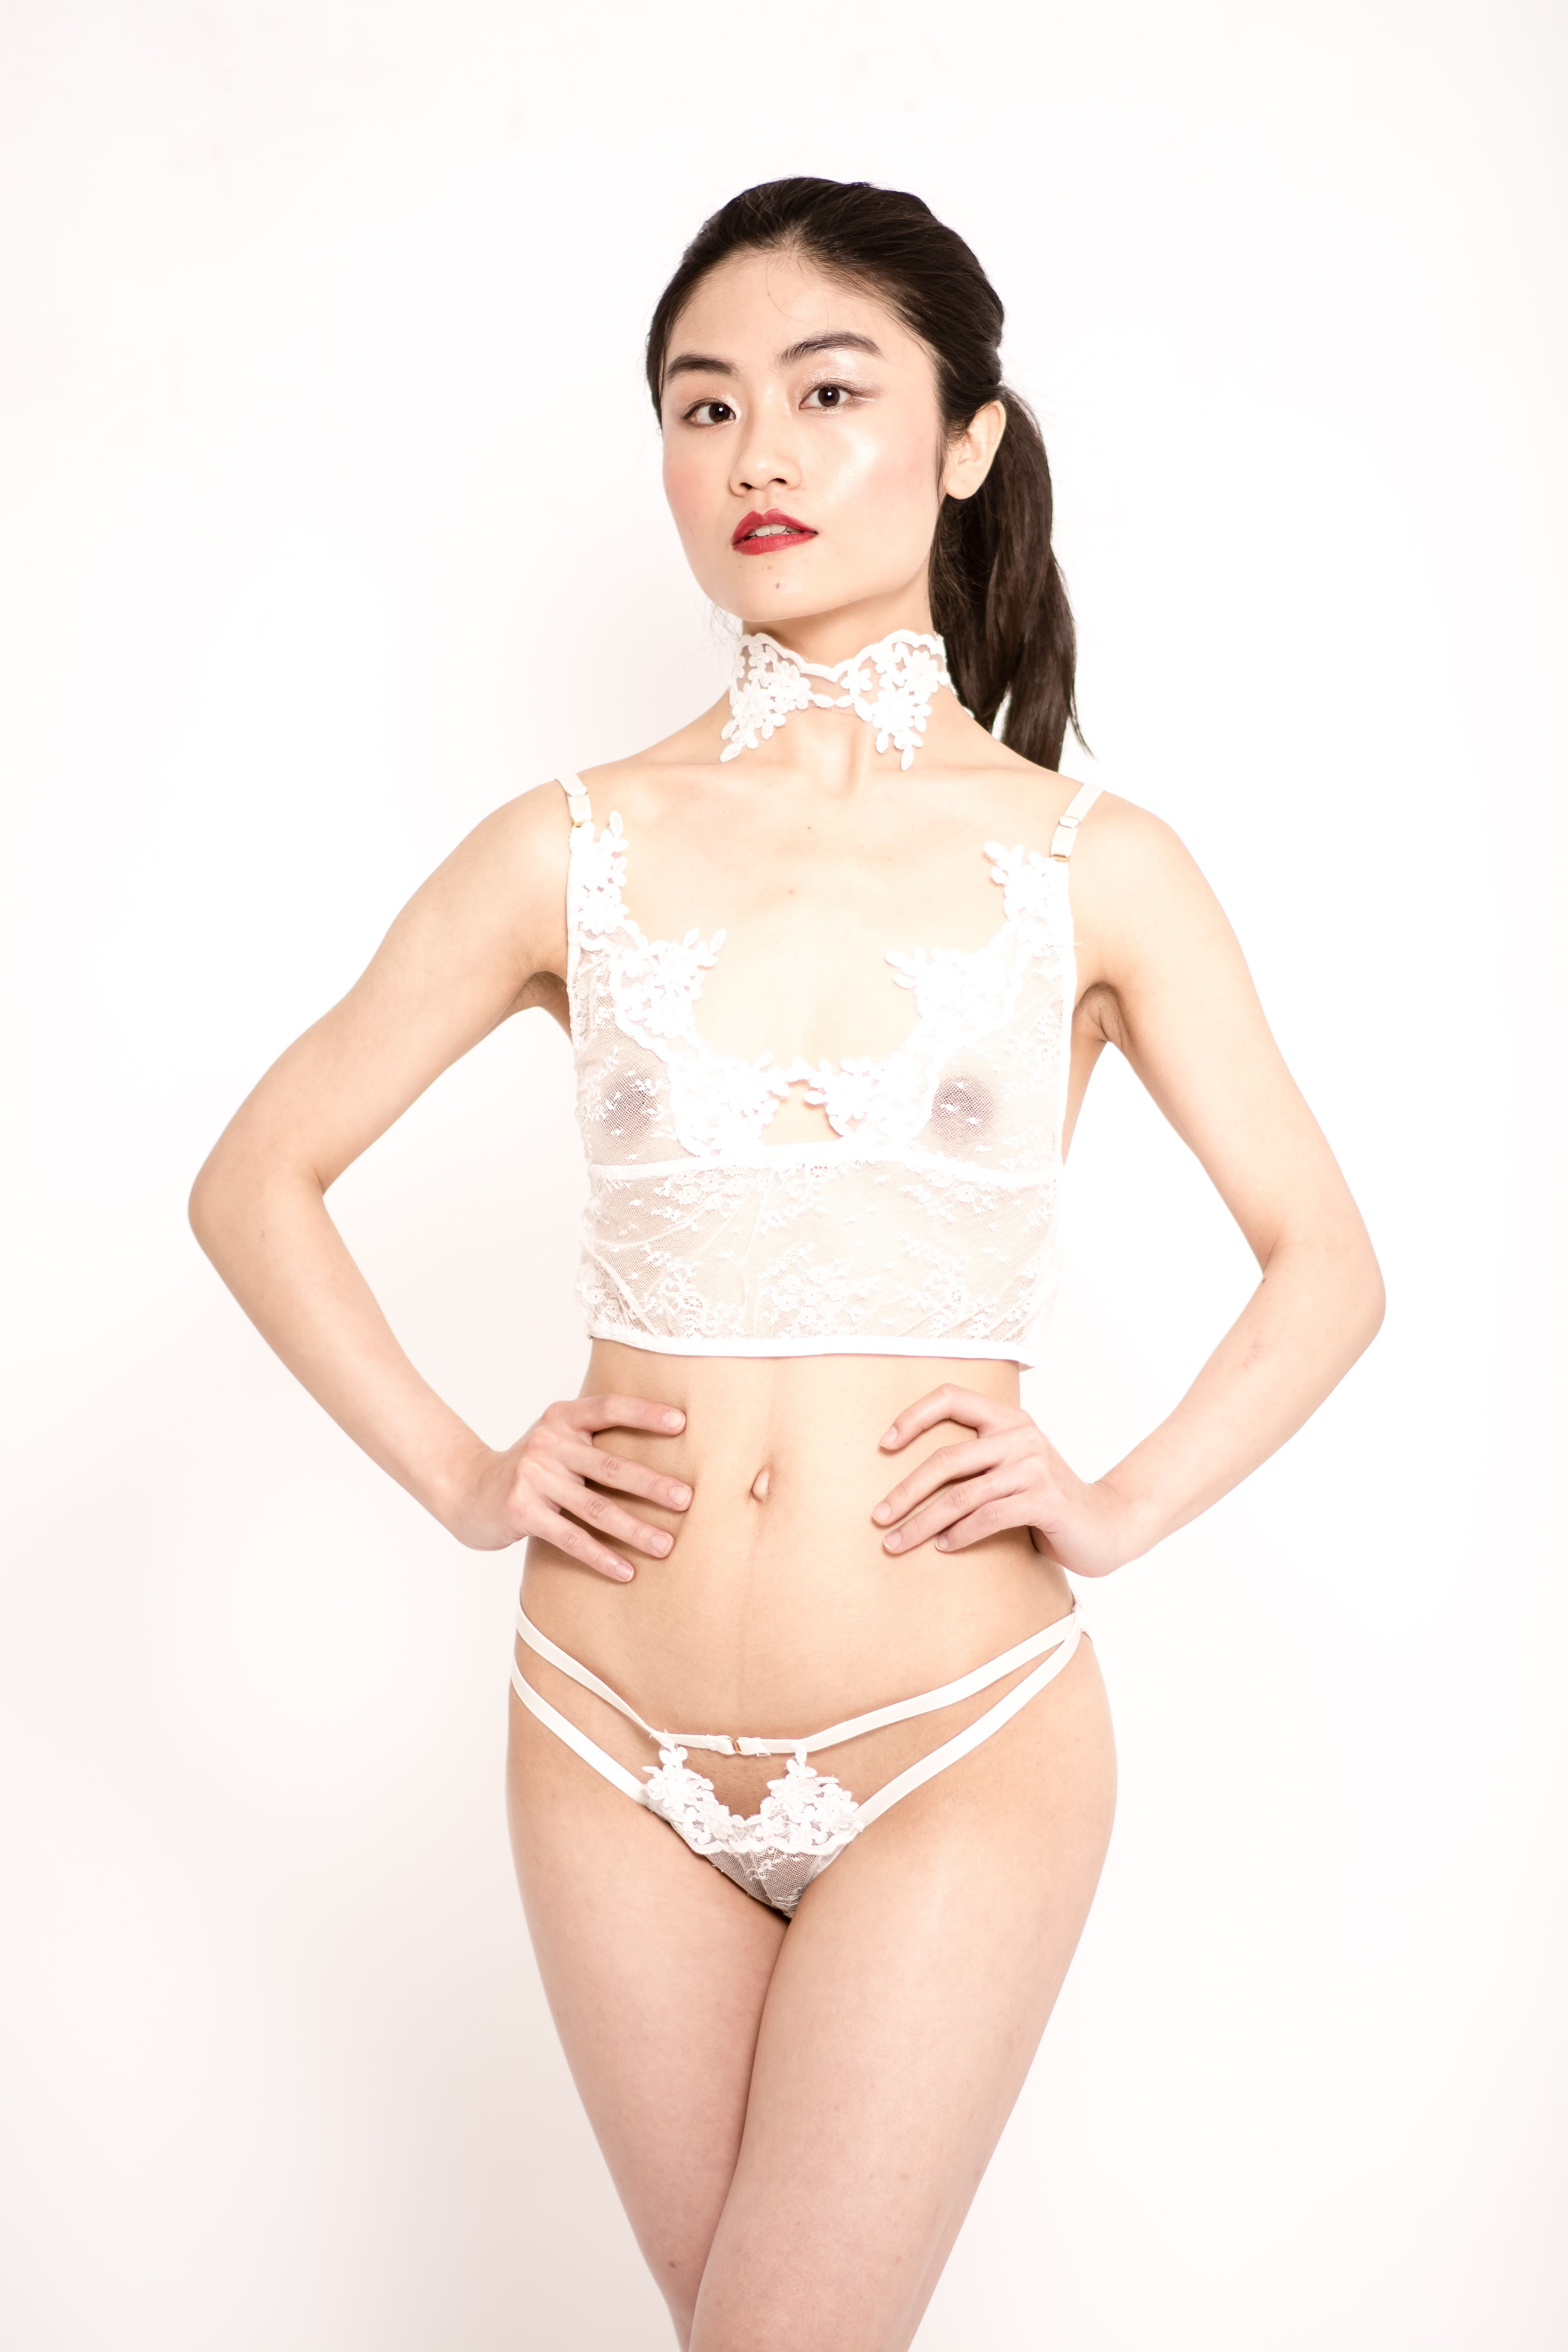 90a0e80732d85 Sofia sheer white lace Made in Paris and ivory embroidery lace lingerie  set. For the sexiest bridal look. Ivory embroidery lace choker as detail.  ...